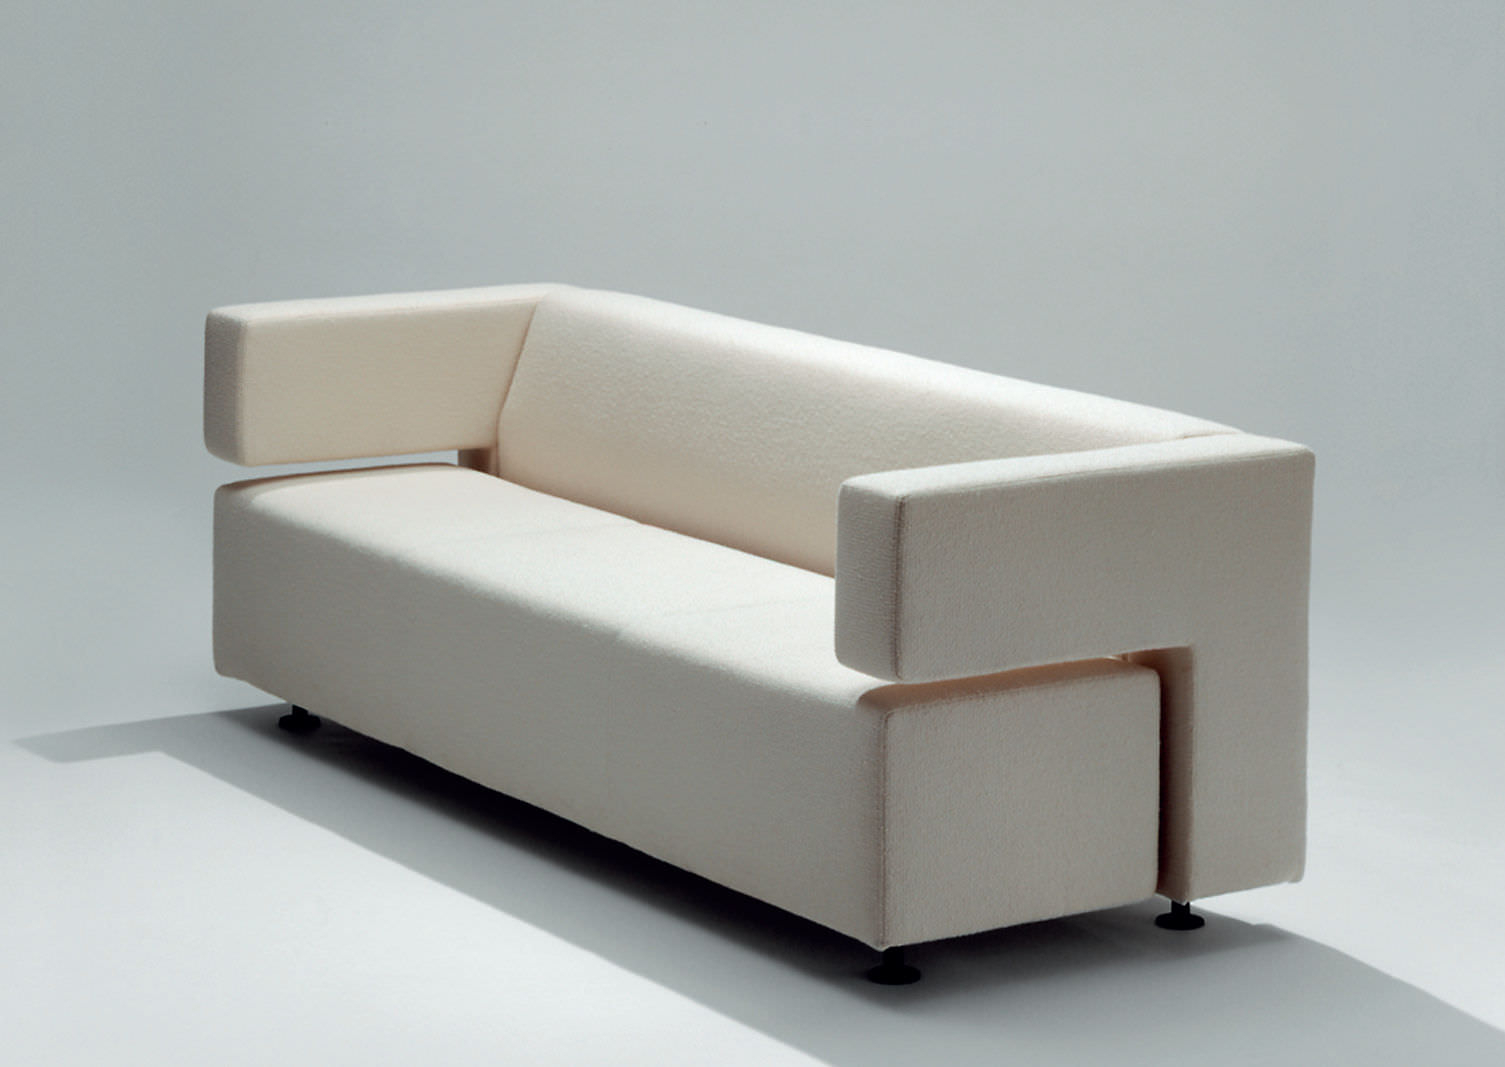 Contemporary Sofa / Leather / Fabric / 2 Person – Milojouko Throughout Milo Sofa Chairs (View 17 of 20)